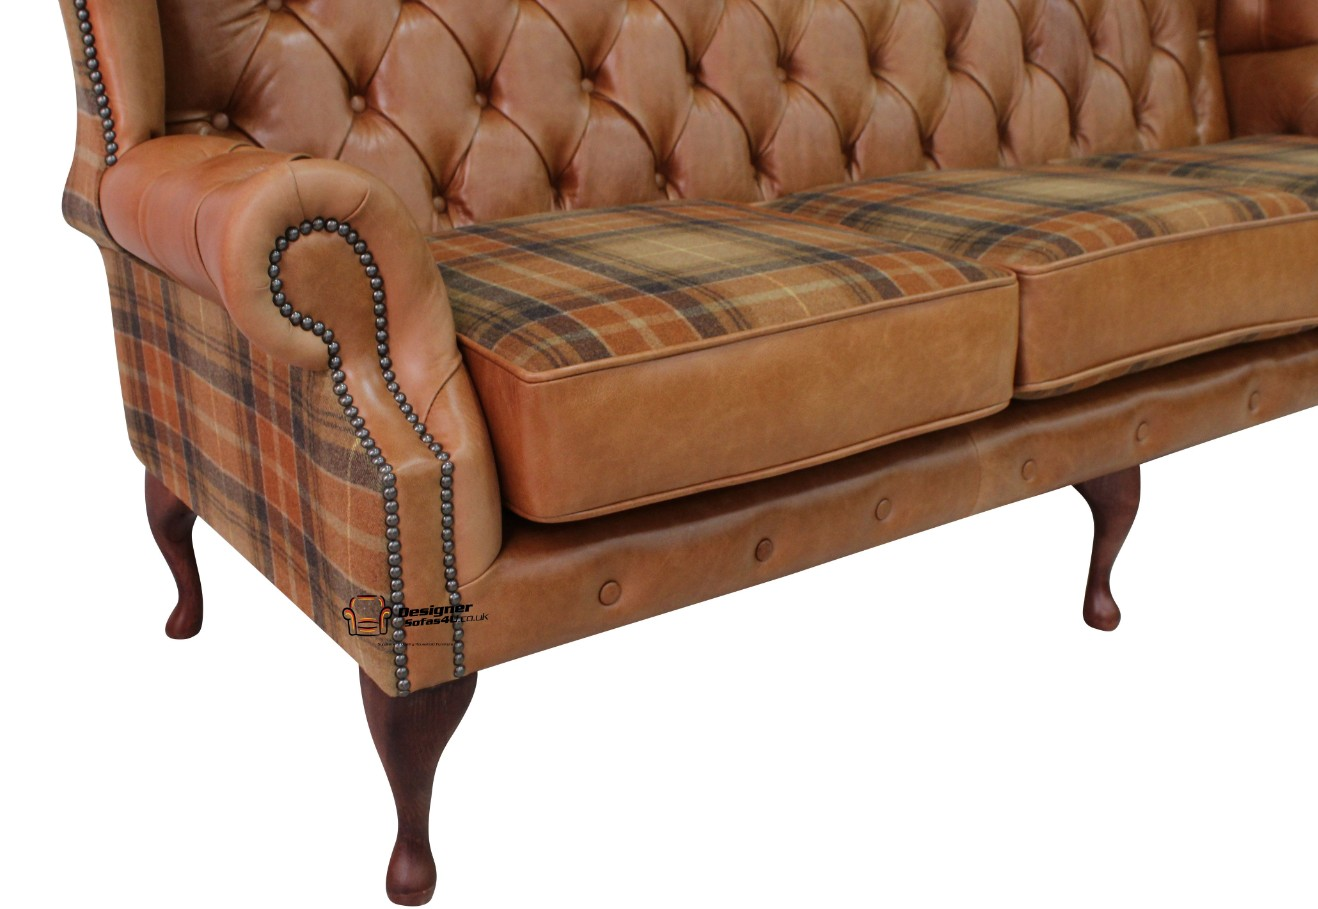 068faf9b84070 Ludlow Tan Chesterfield 3 Seater High Back sofa